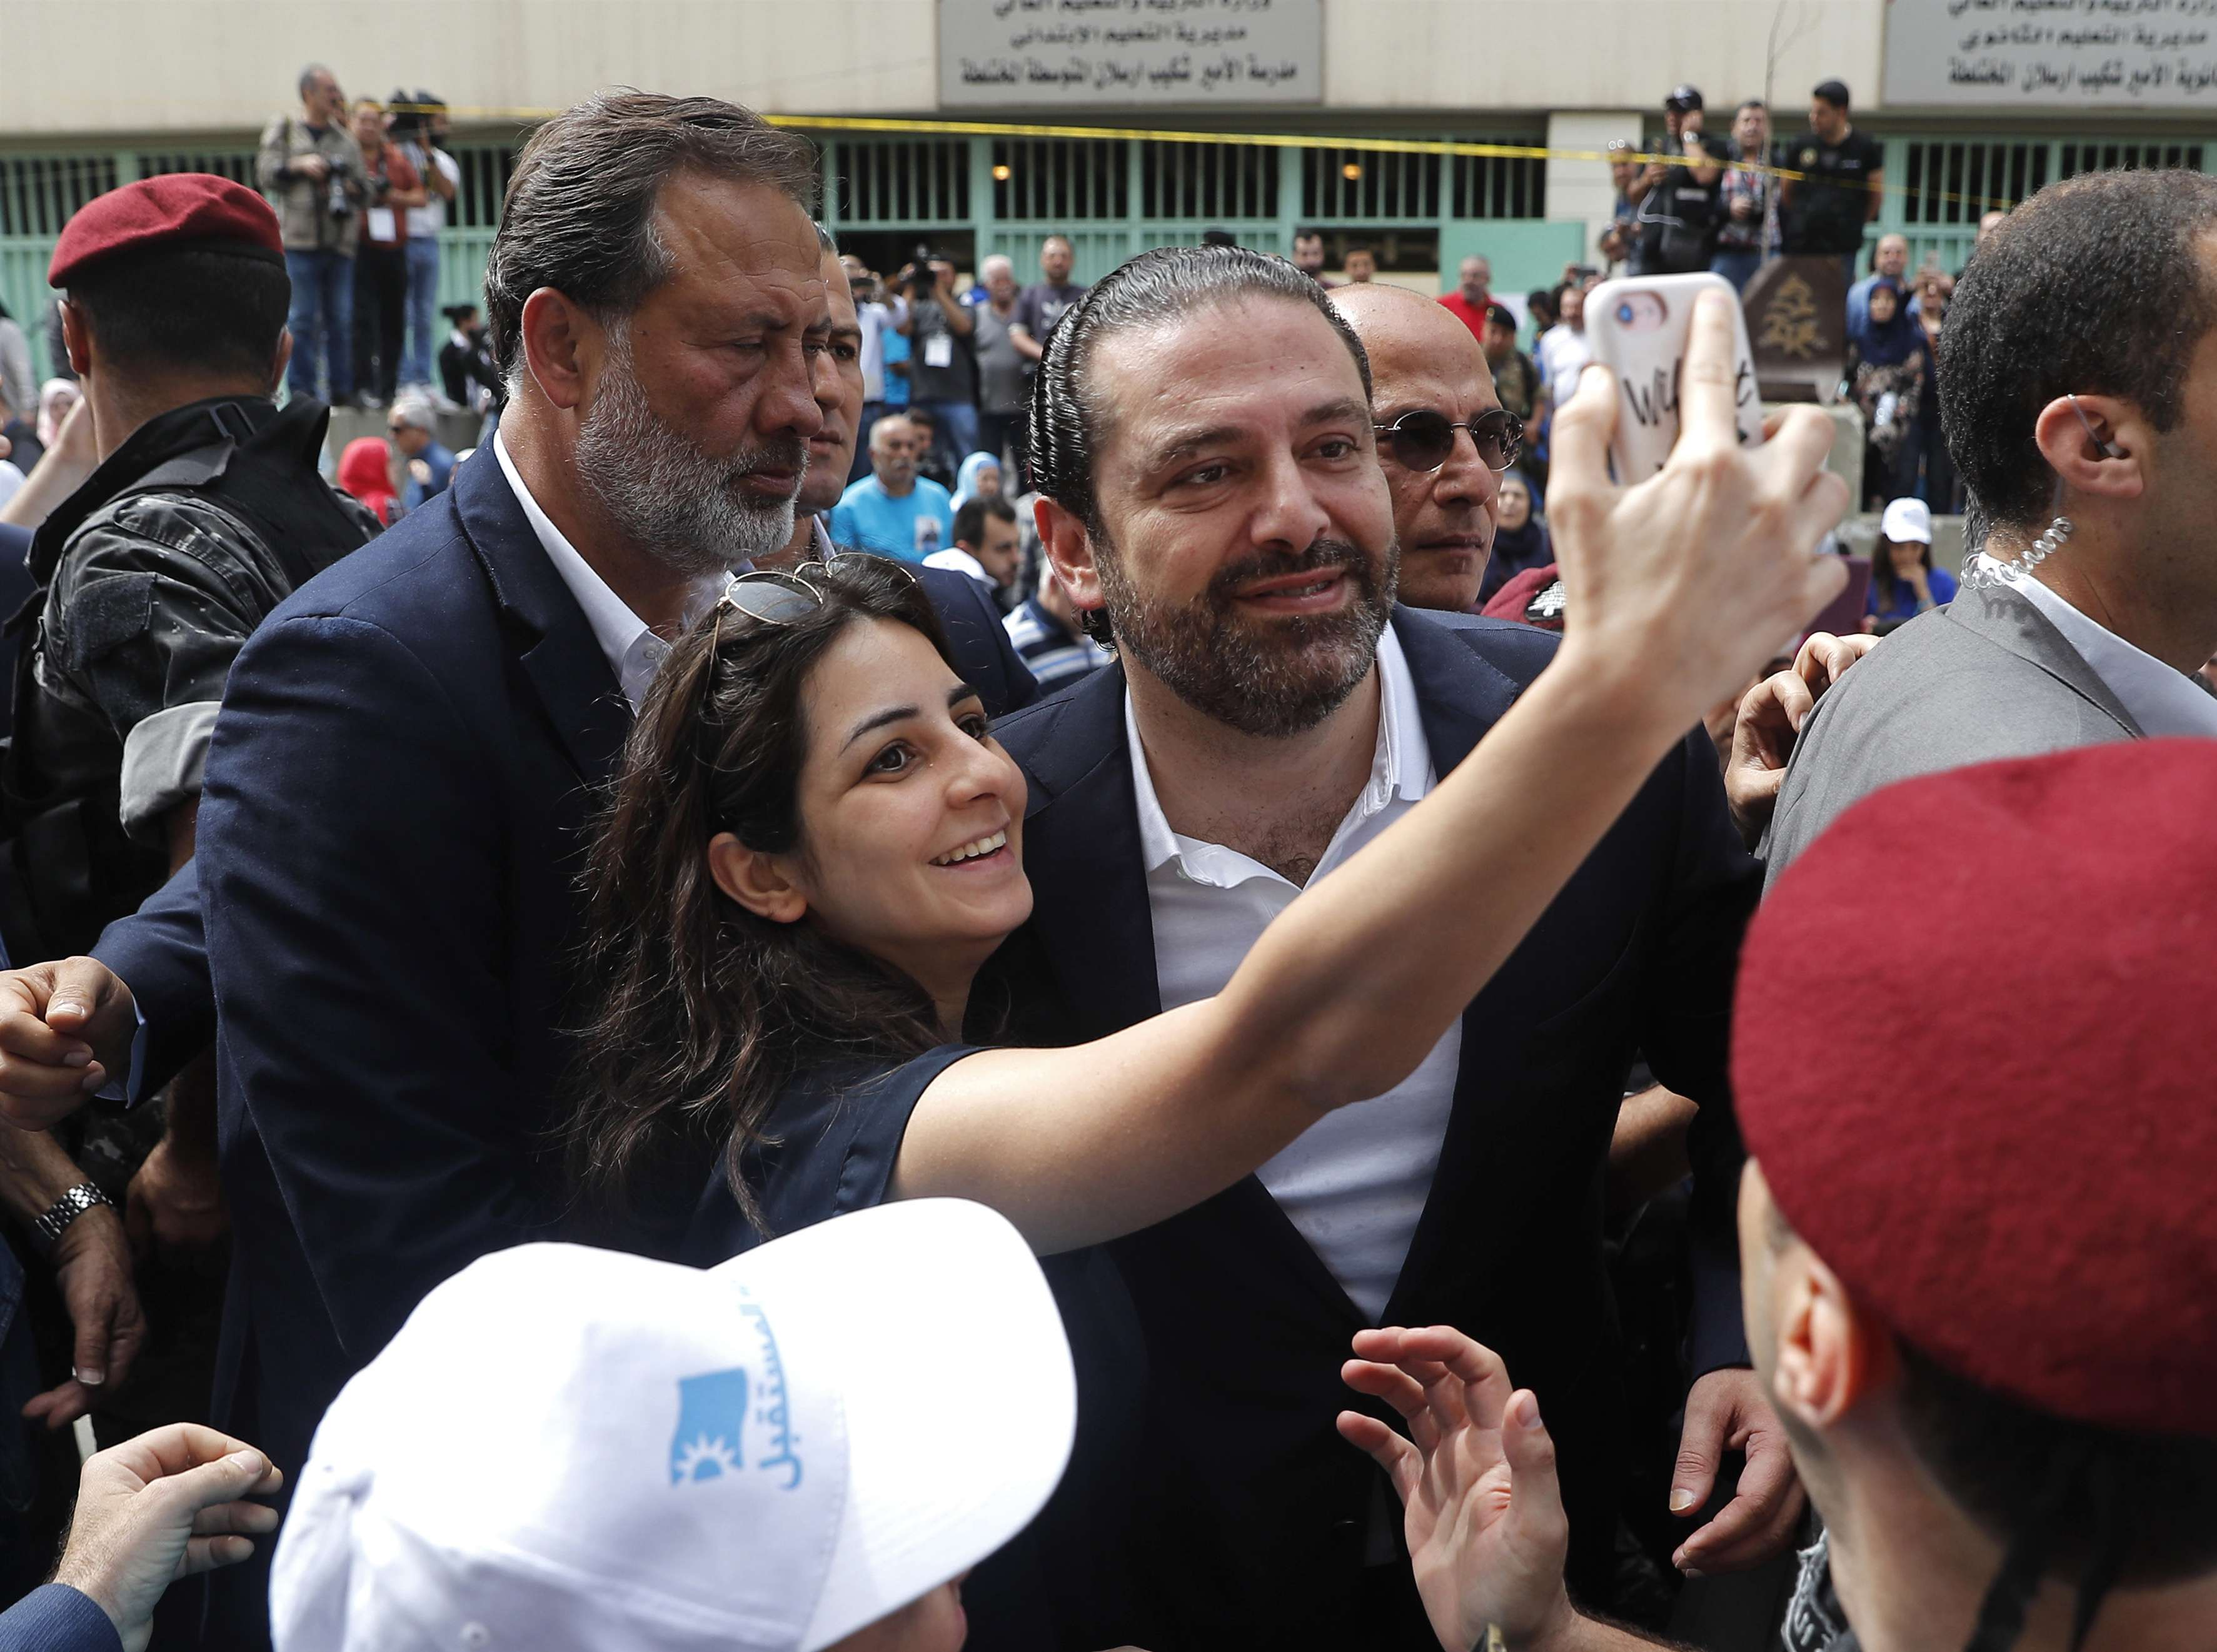 Changed view. A supporter of Lebanese Prime Minister Saad Hariri 5c° takes a selfie with him in Beirut. (AP)